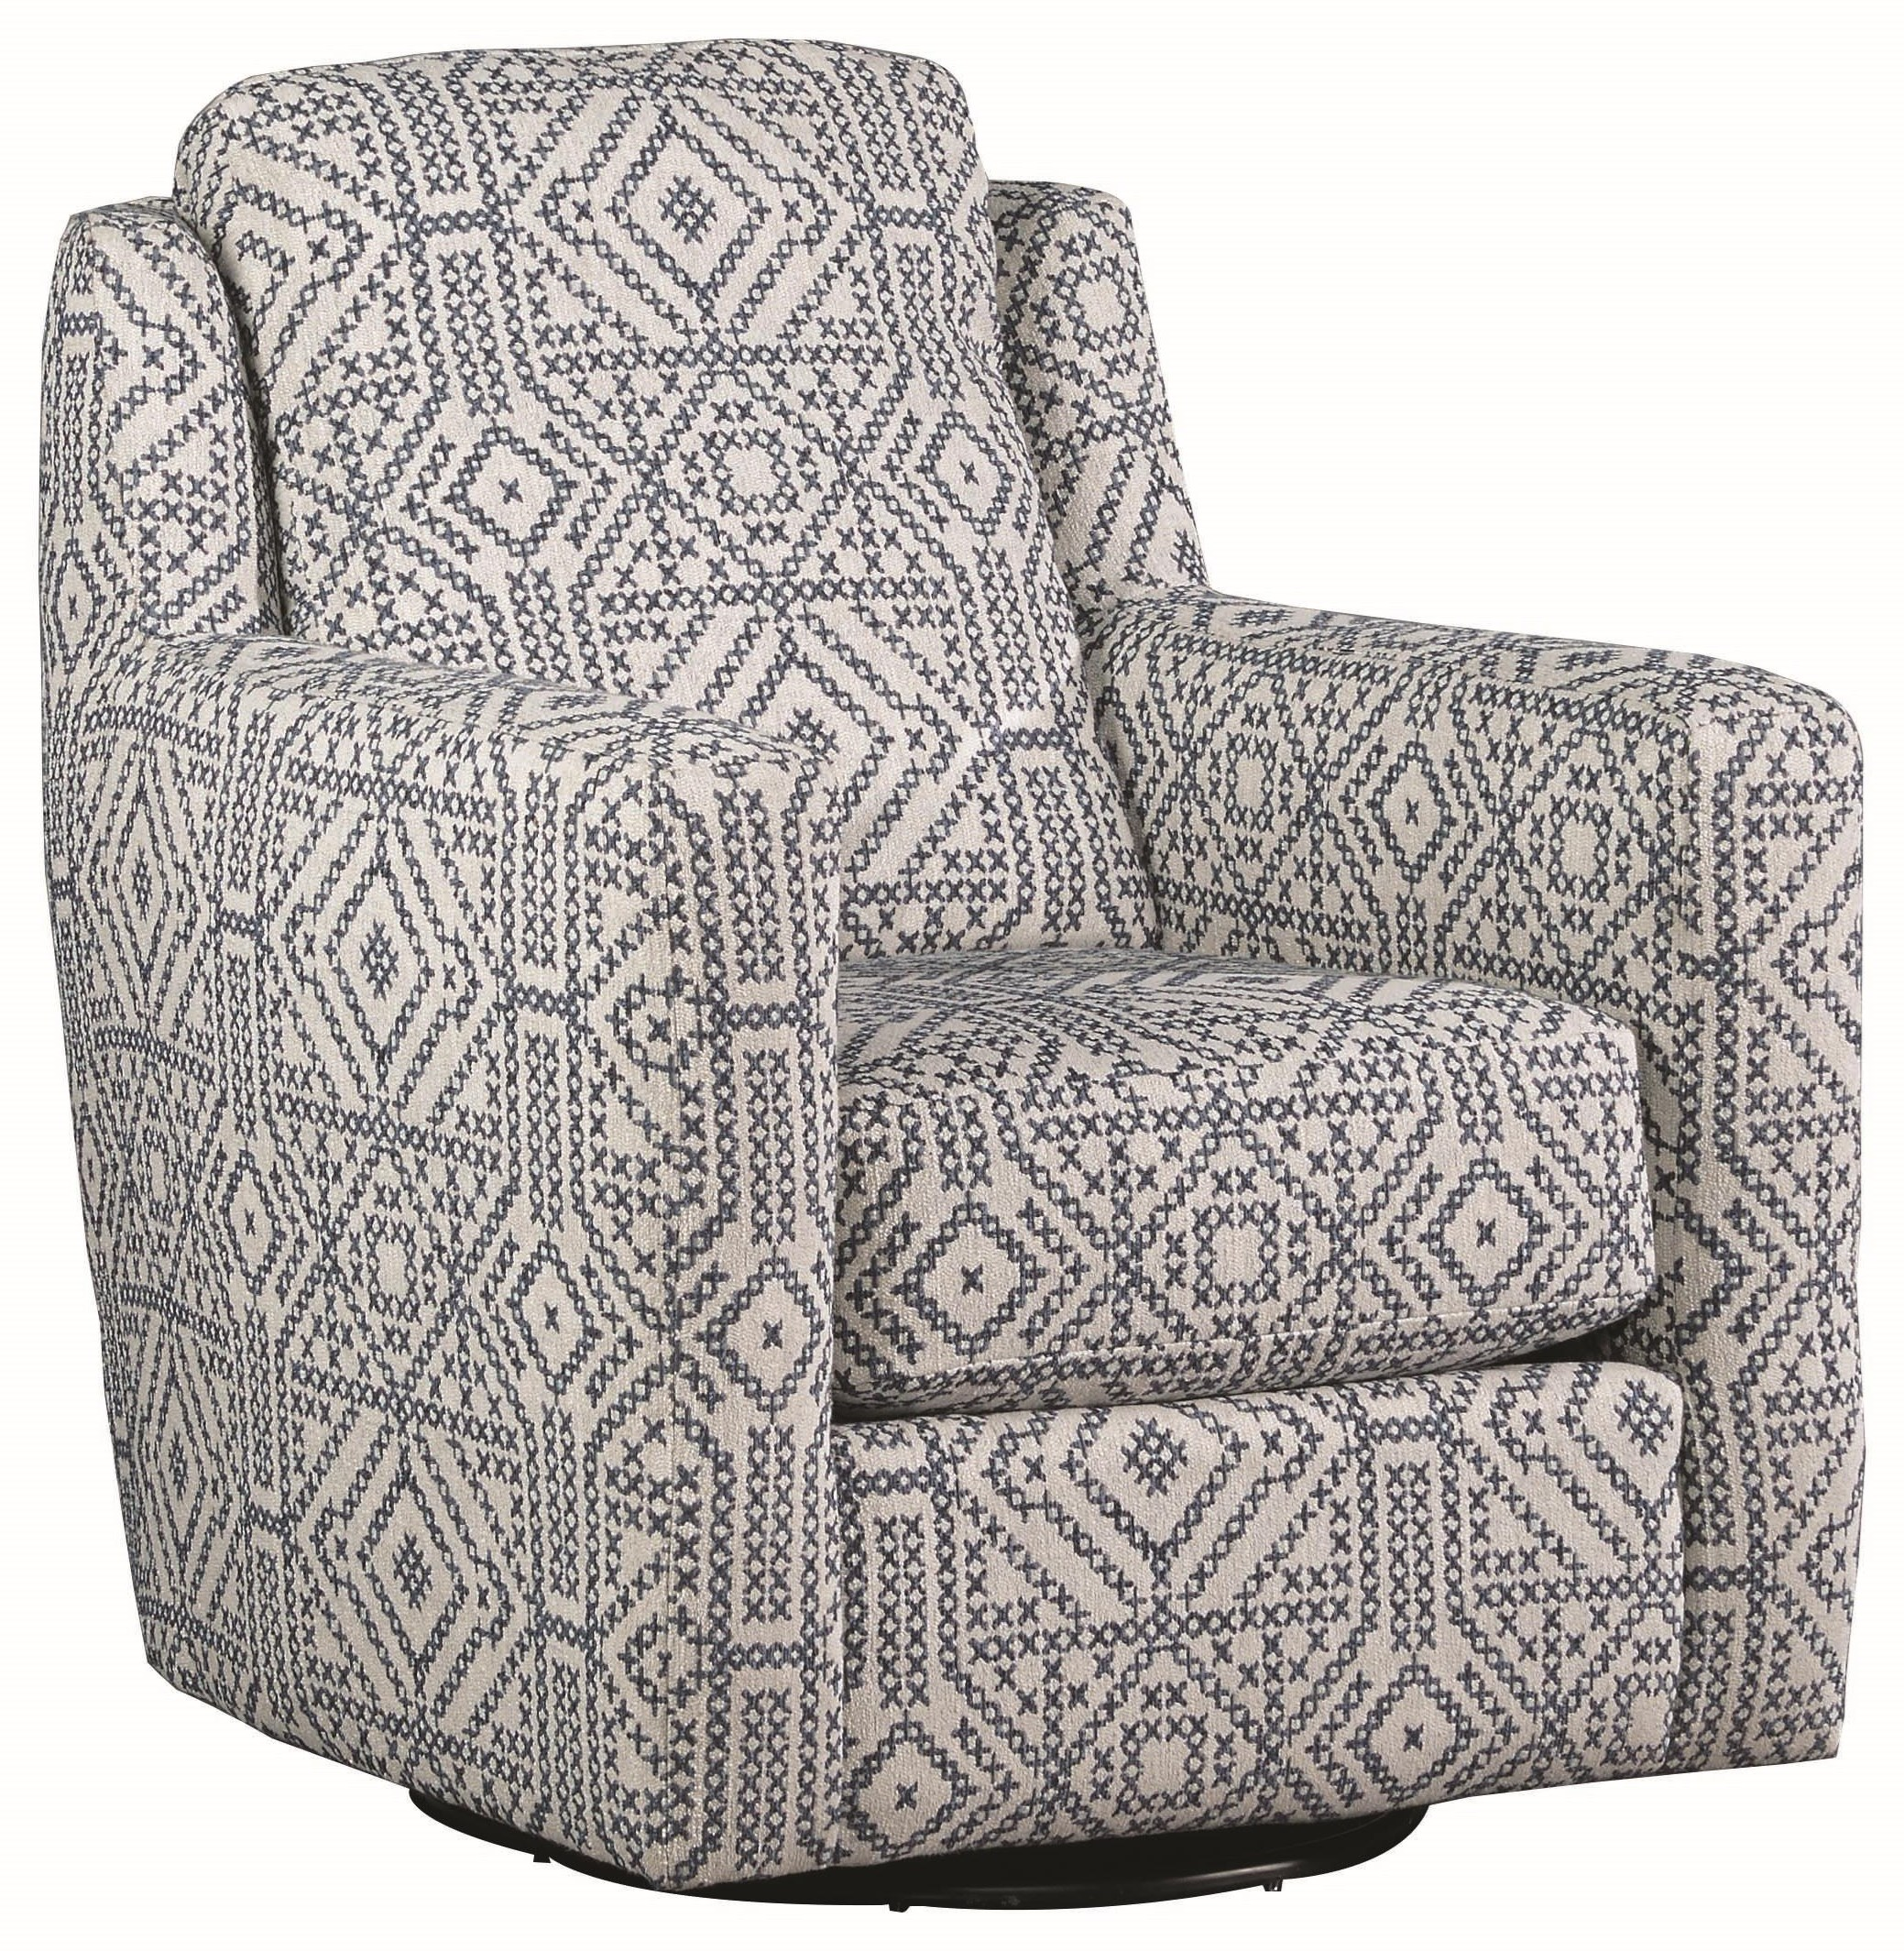 Diva Swivel Glider by Southern Motion at Crowley Furniture & Mattress